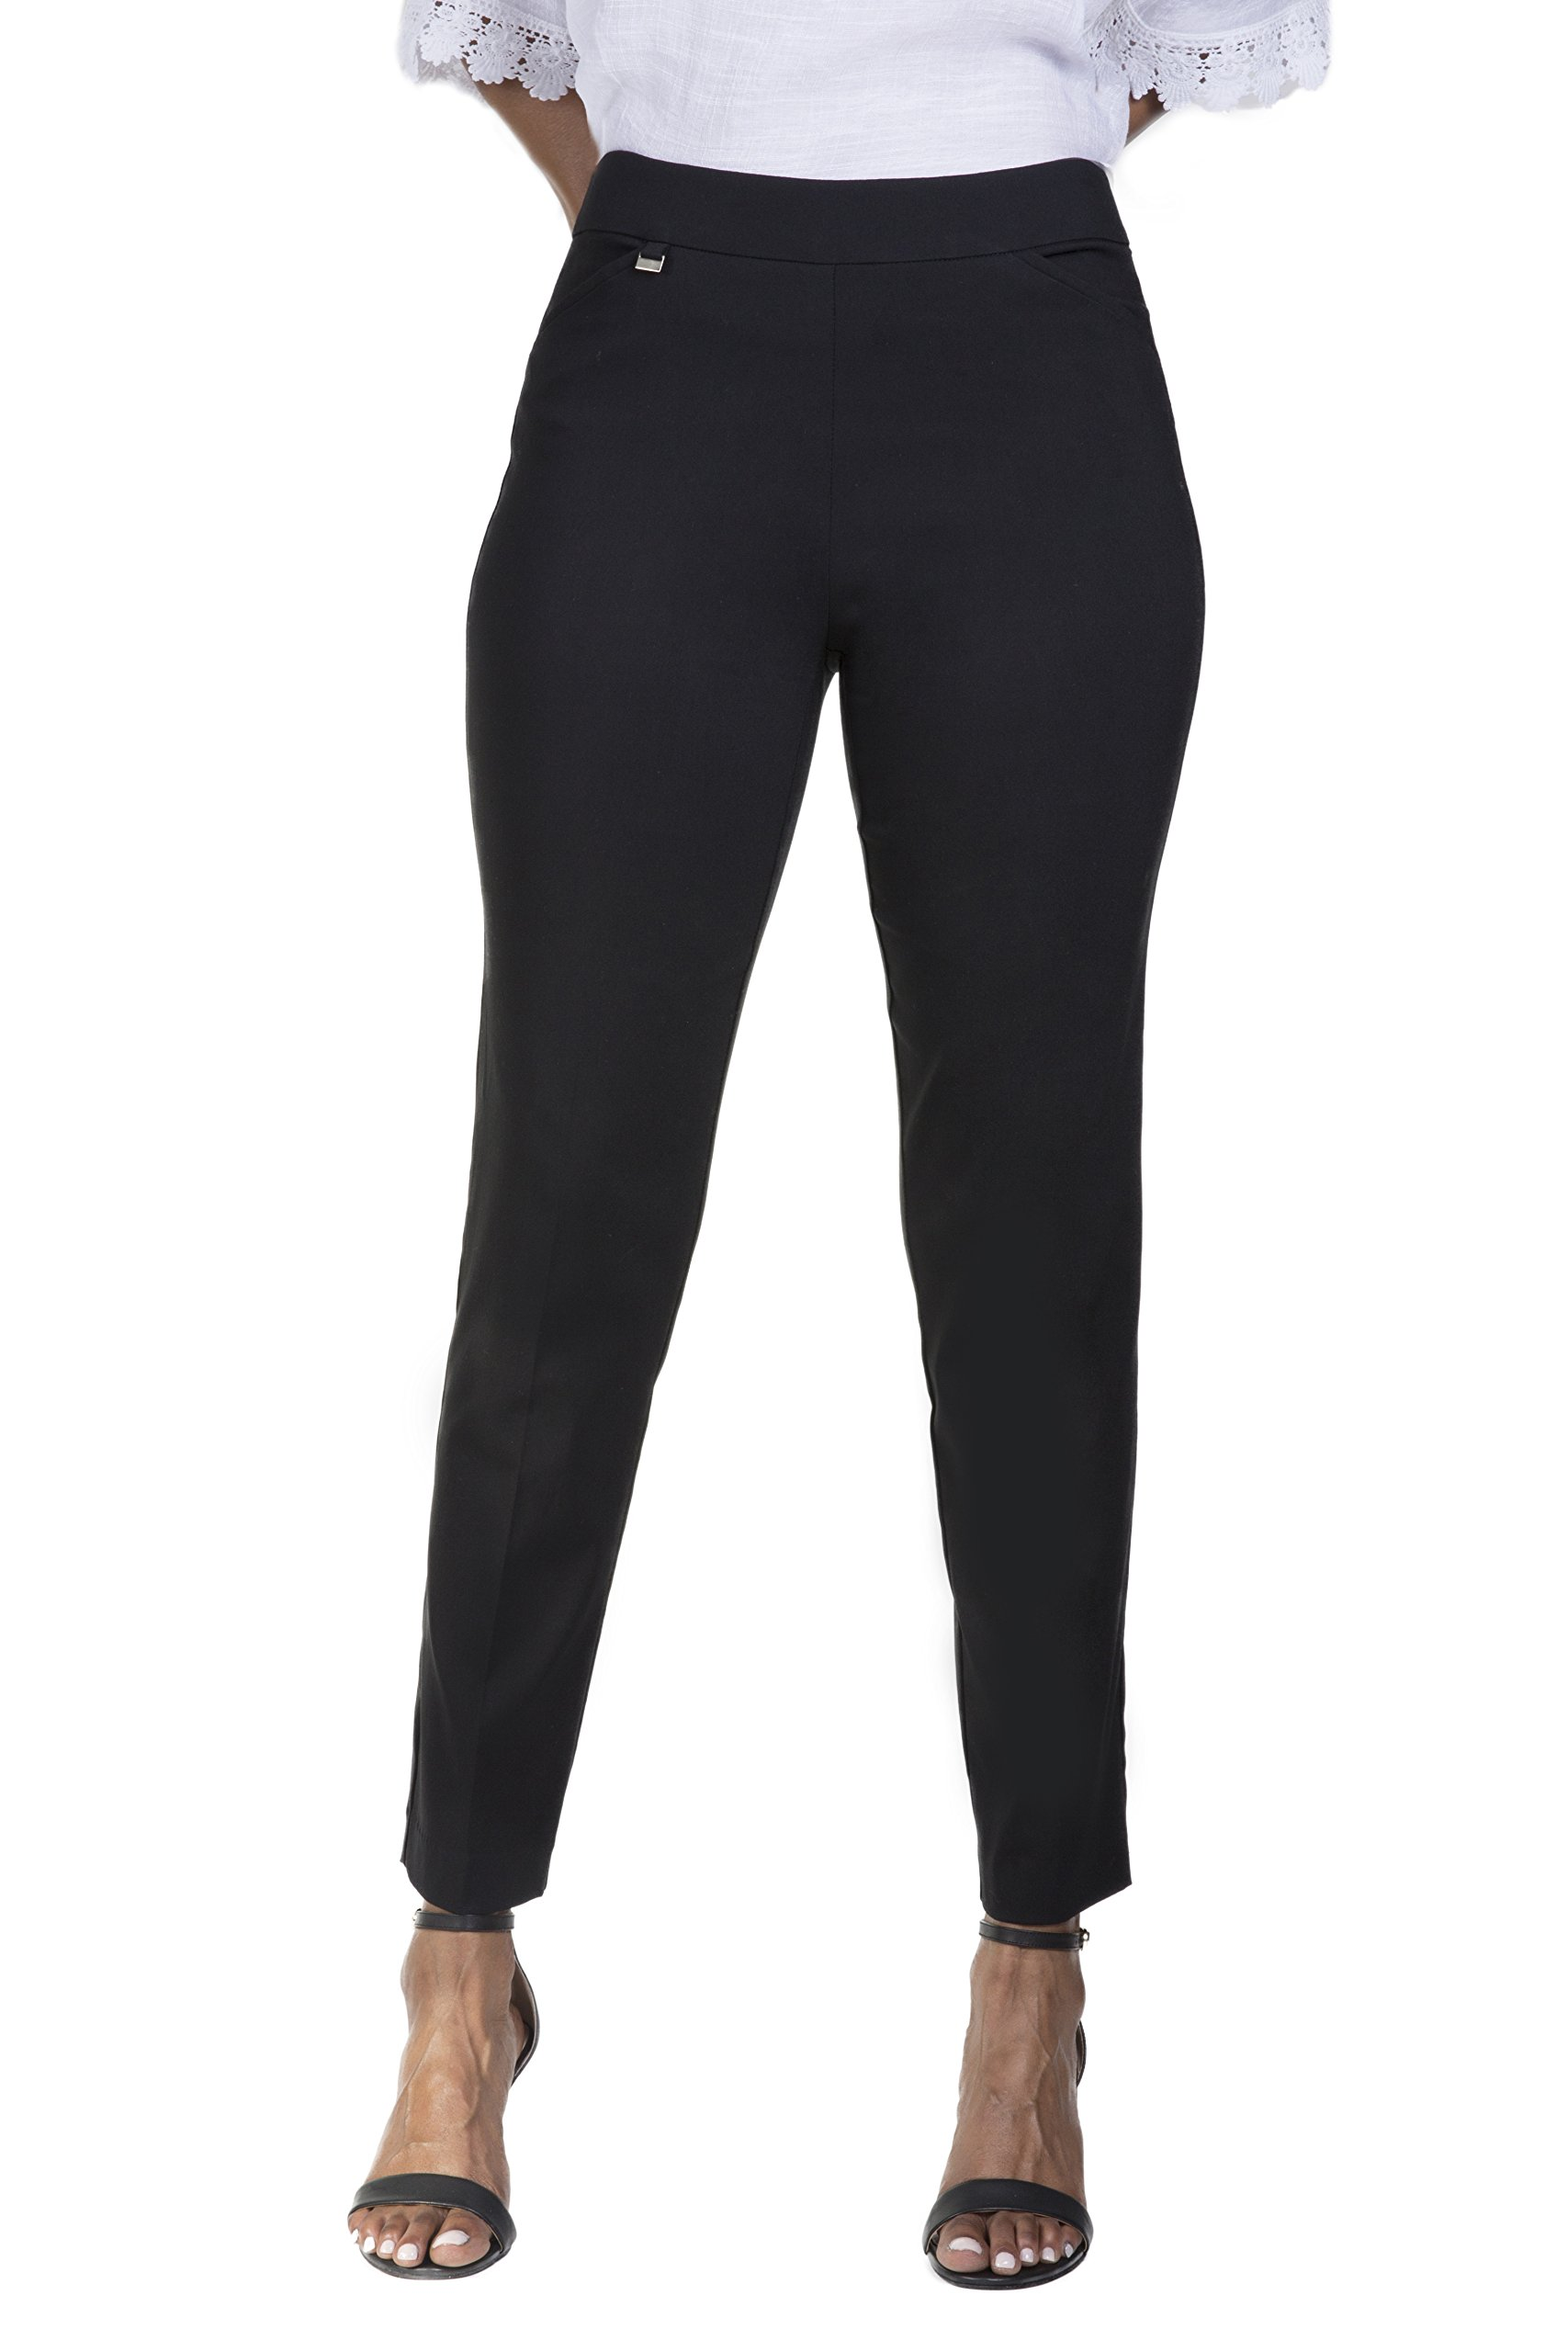 Fundamental Things Women's Easy Pull-On Slim Leg Pants with Tummy Control, Black, Size 10